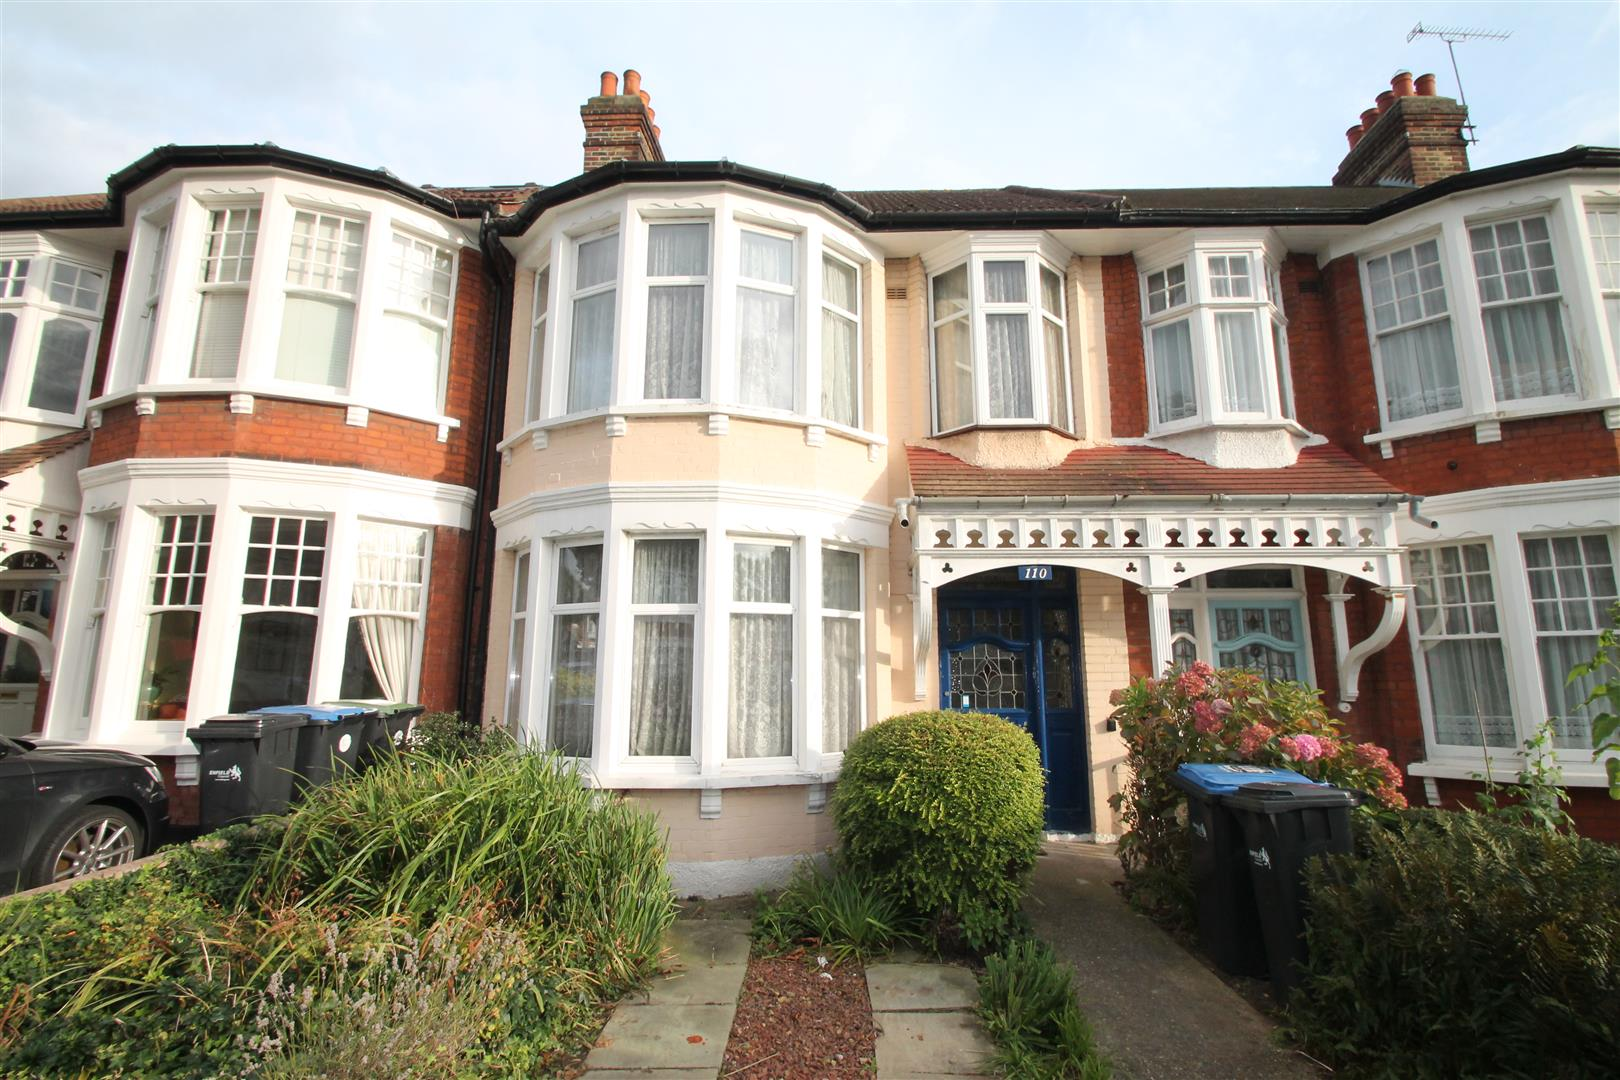 3 Bedrooms House for sale in Riverway, Palmers Green, London N13